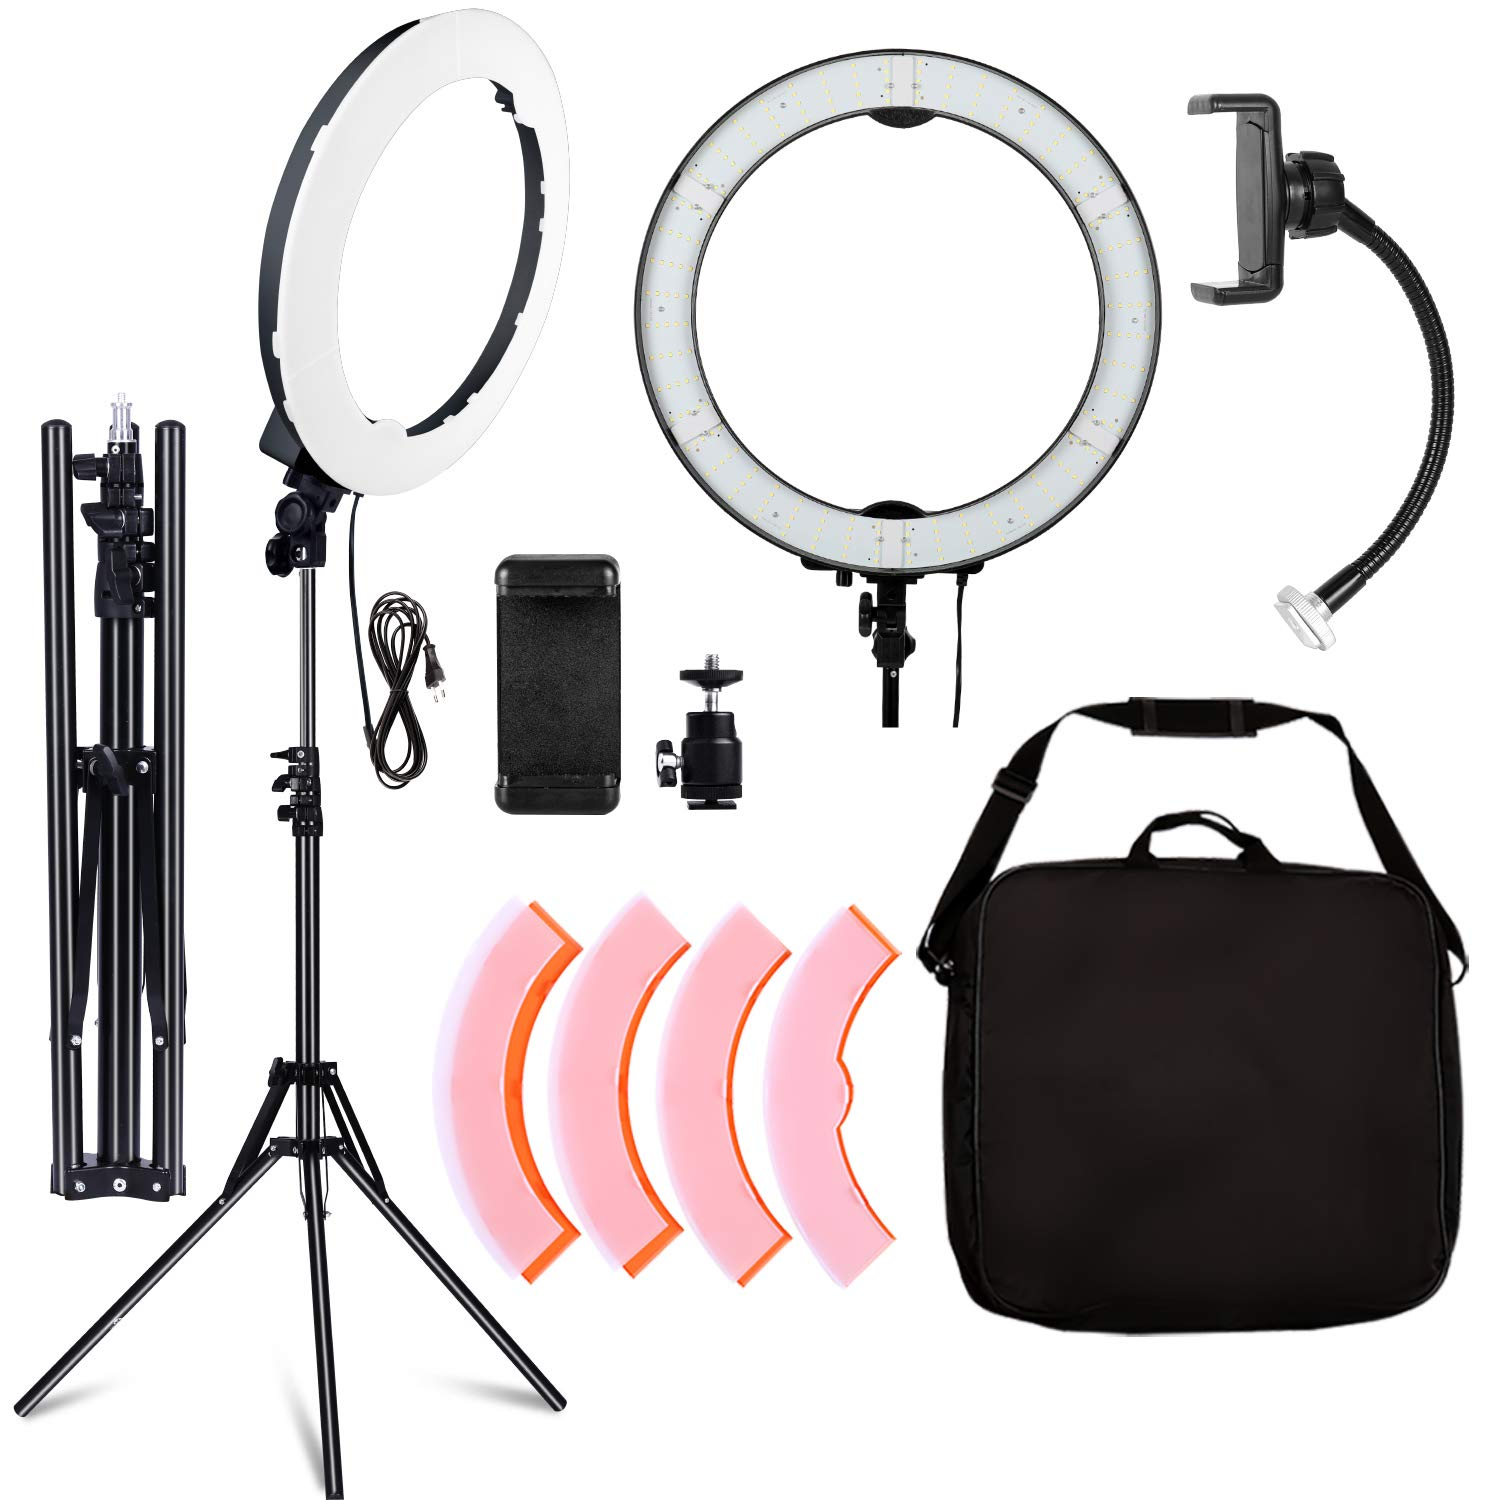 SH Camera Photo Video Lighting Kit: 20 inches/49 Centimeters Outer 55W 5500K Dimmable LED Ring Light, for Smartphone, YouTube, Vine Self-Portrait Video Shooting